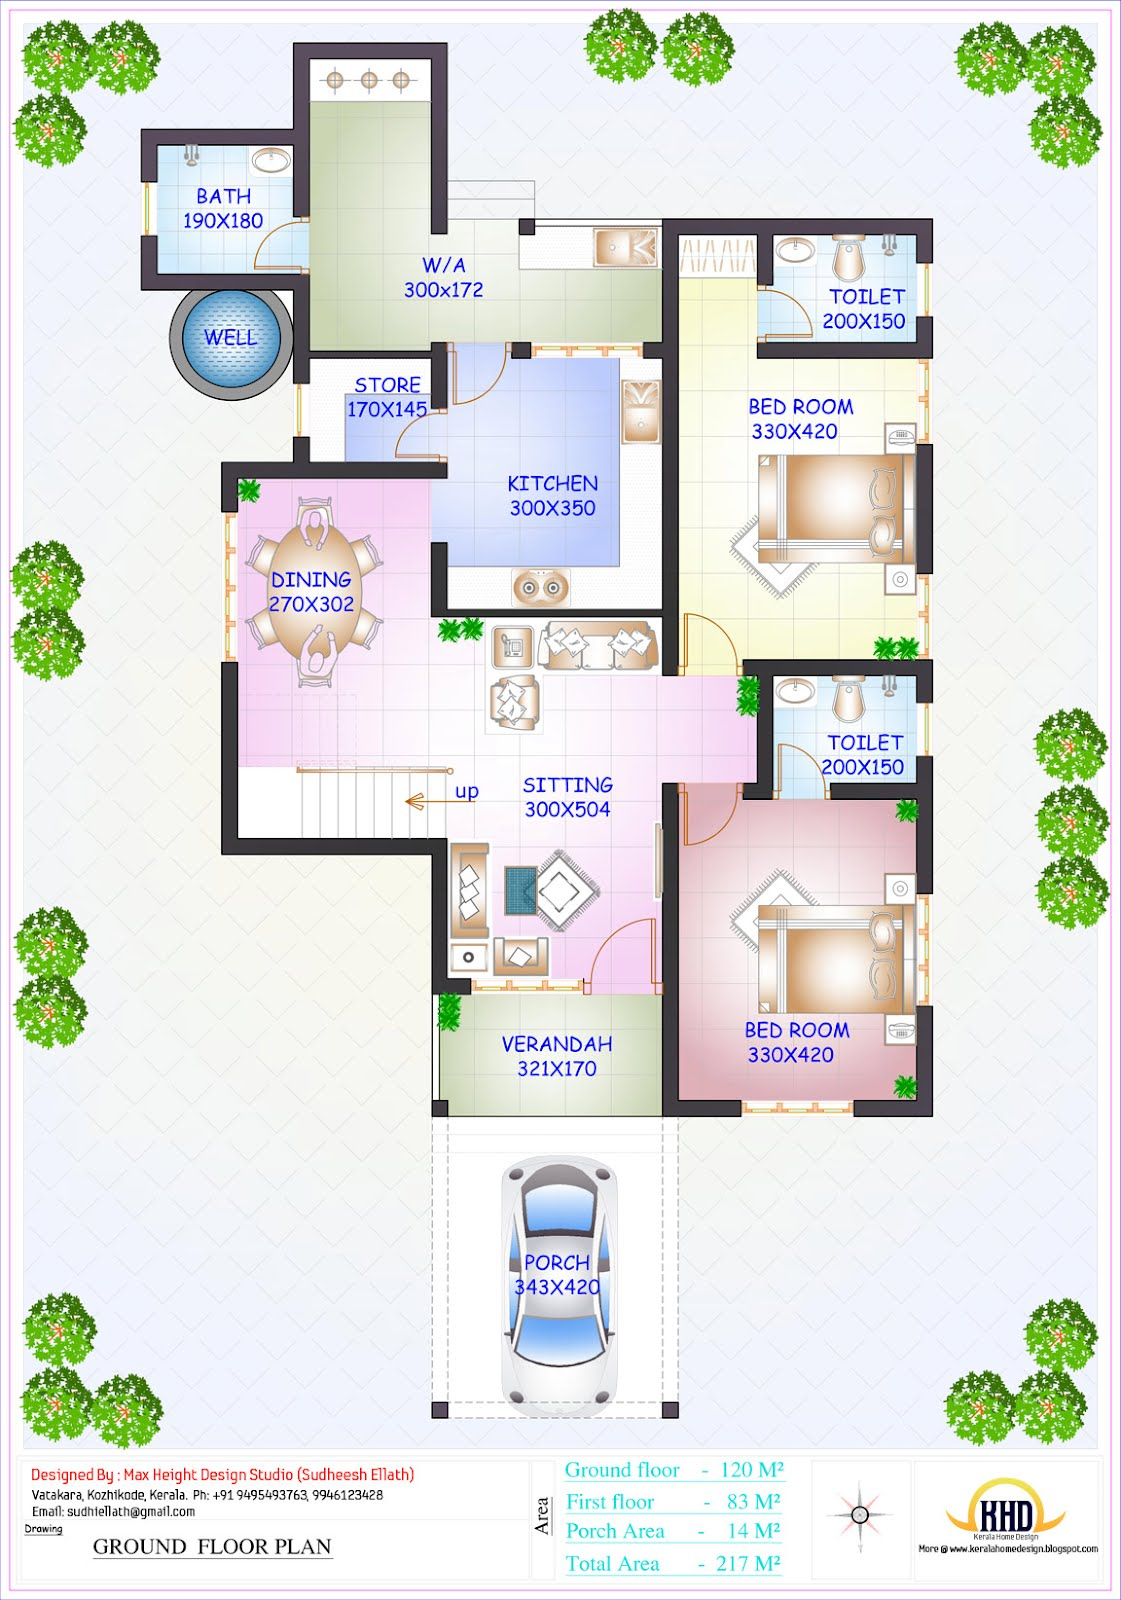 4 Bedroom Kerala House Plans And S Style Ideas. House Plans In Kerala With 4 Bedrooms   House Decor